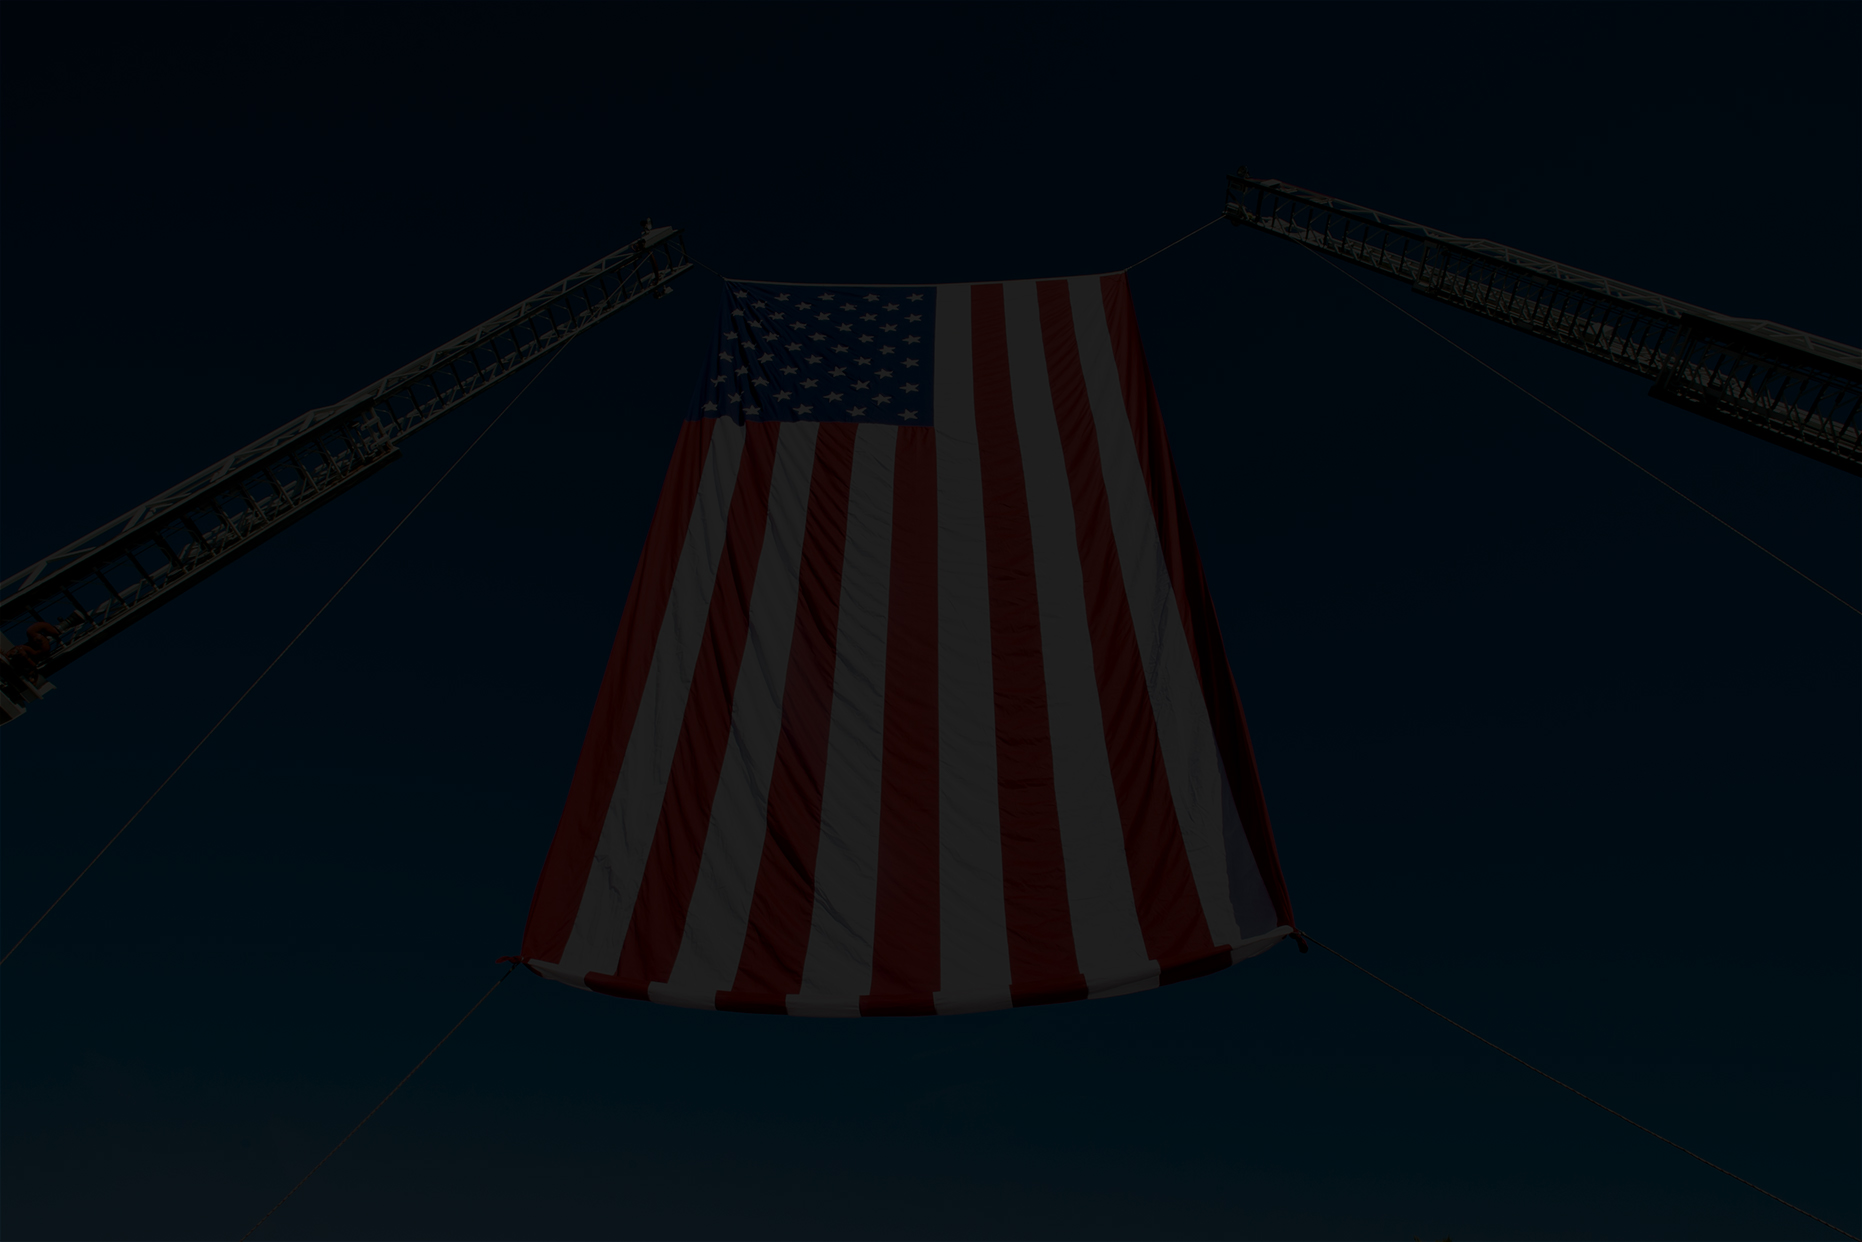 image of a darkened American flag for a background.